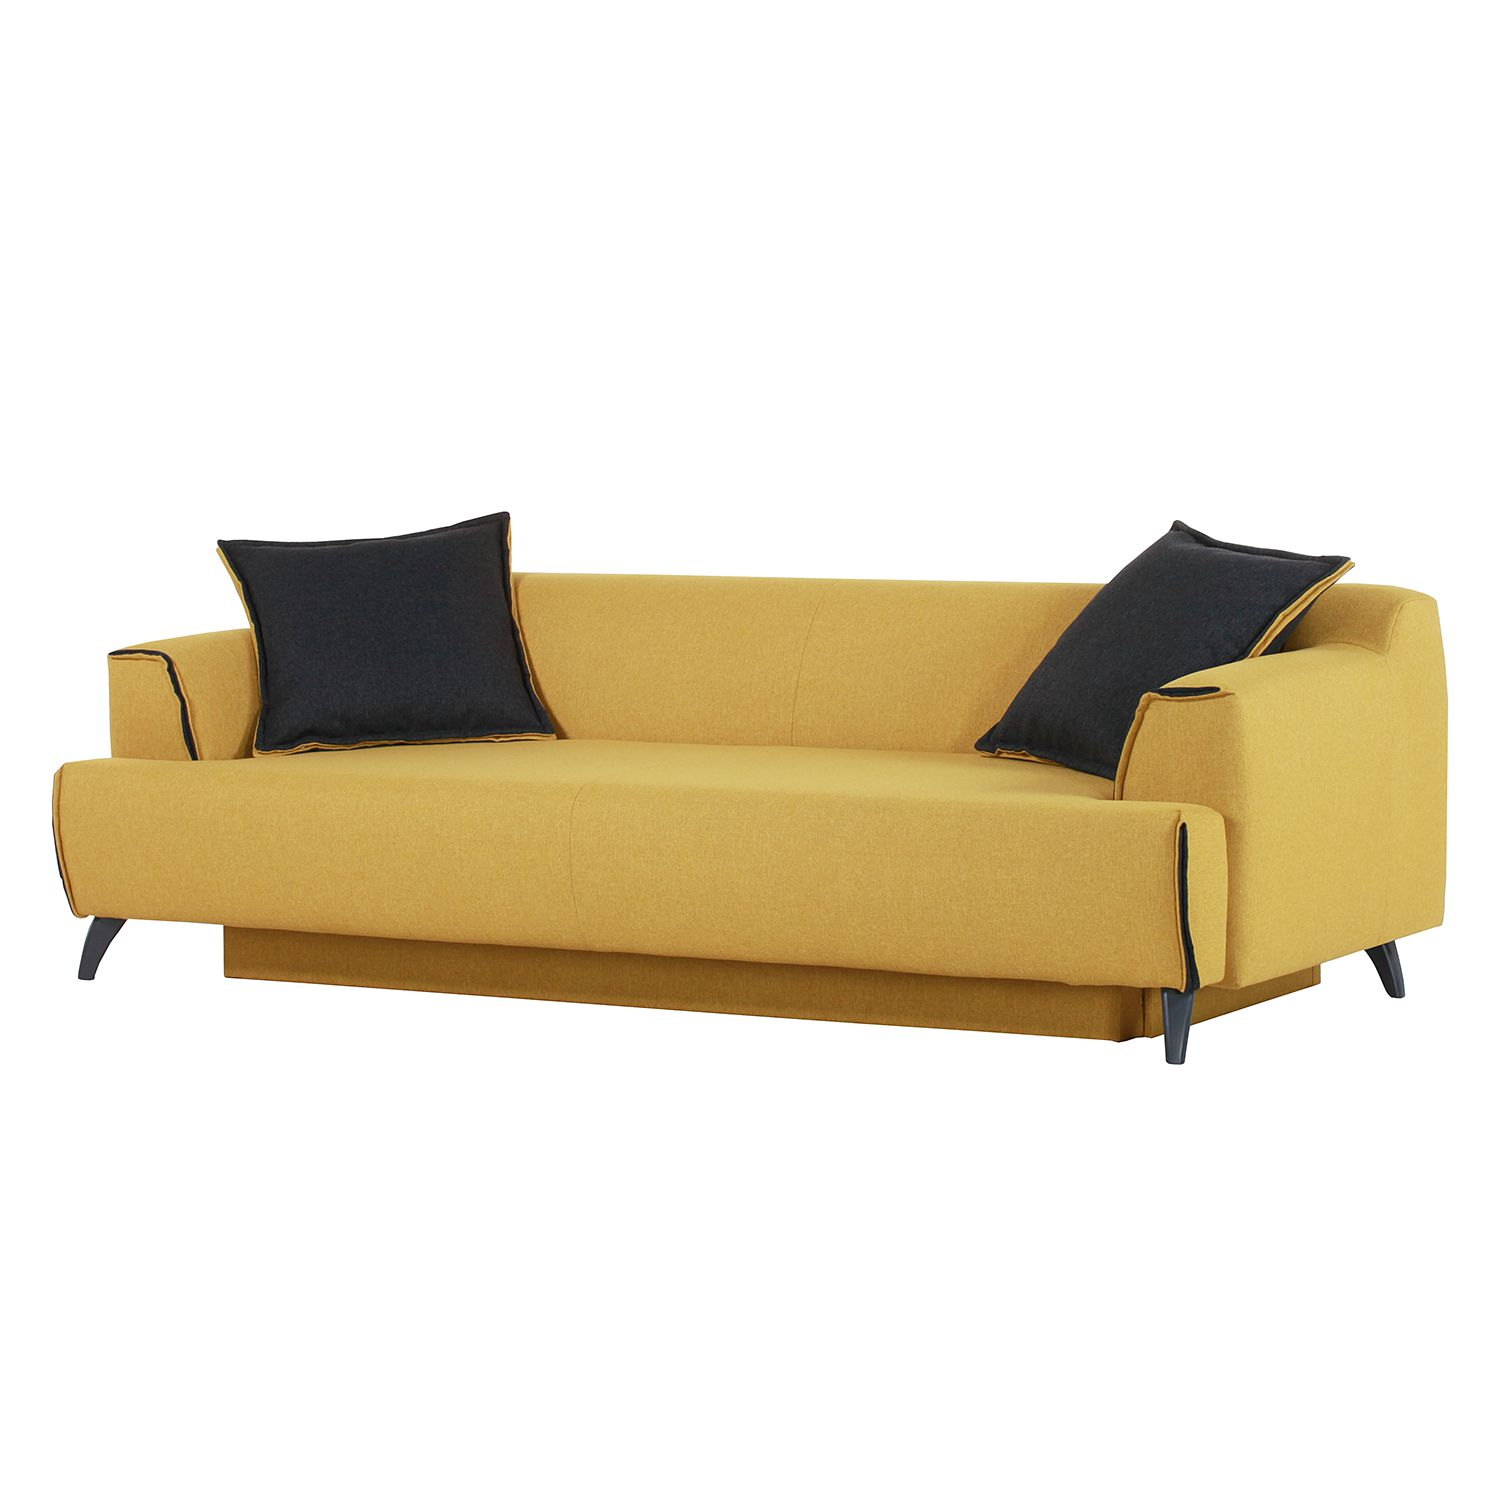 Bigsofa Leddy (mit Schlaffunktion) - Webstoff - Senfgelb / Anthrazit, roomscape